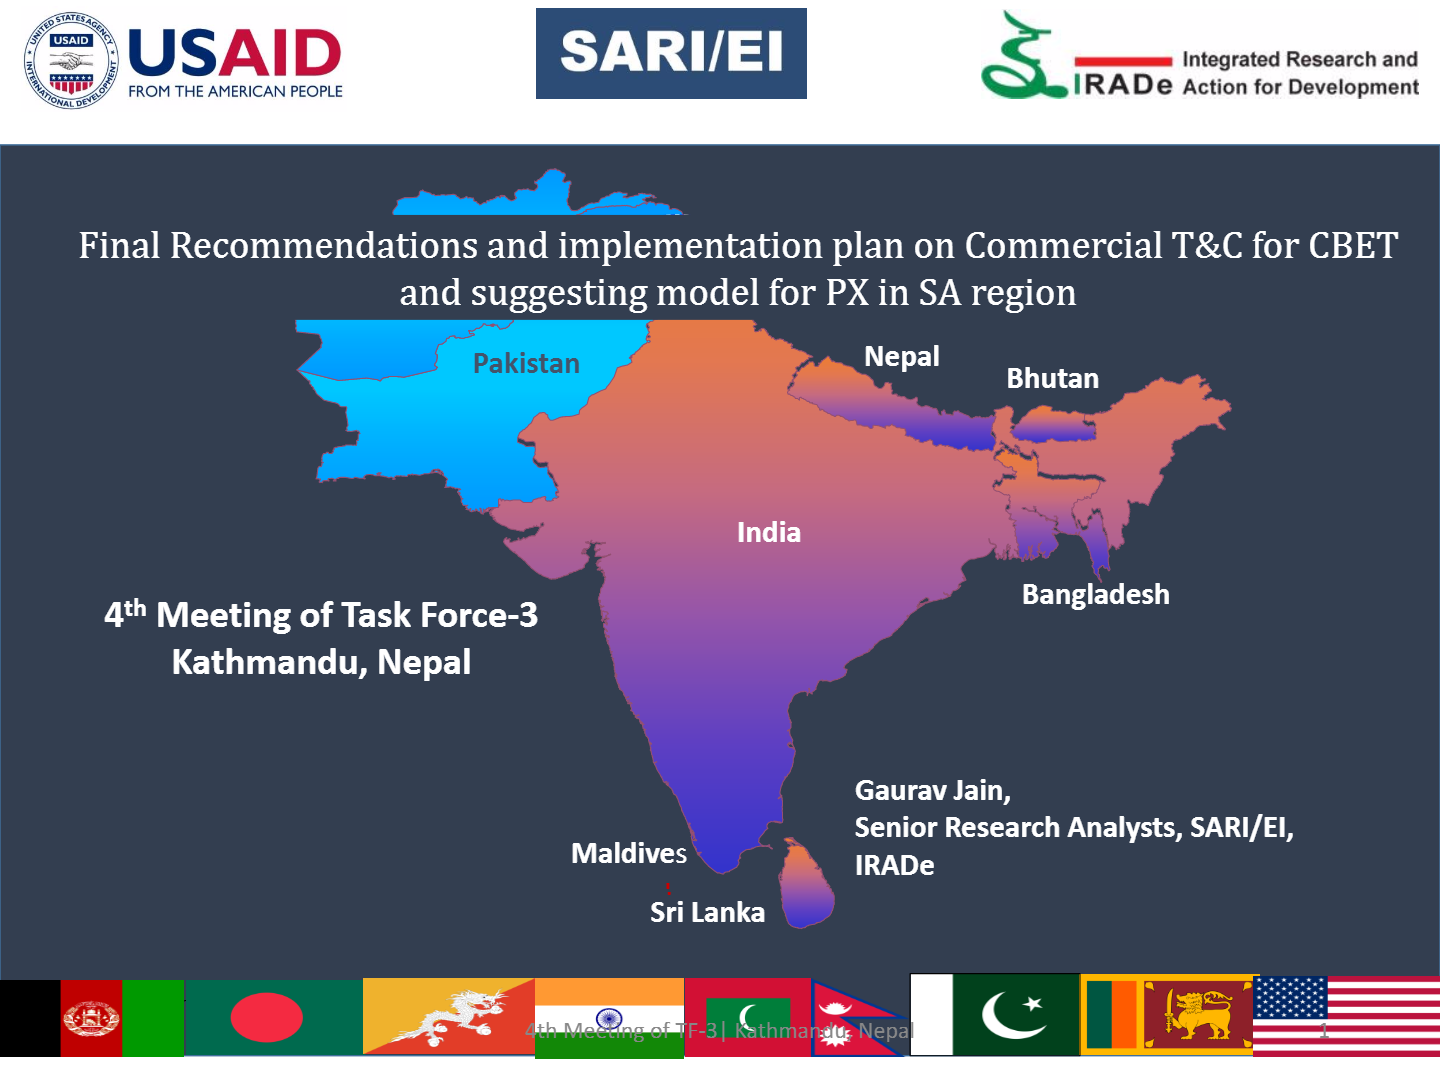 Final-Recommendations-and-implementation-plan-on-Commercial-TC-for-CBET-and-suggesting-model-for-PX-in-SA-region-by-Gaurav-Jain